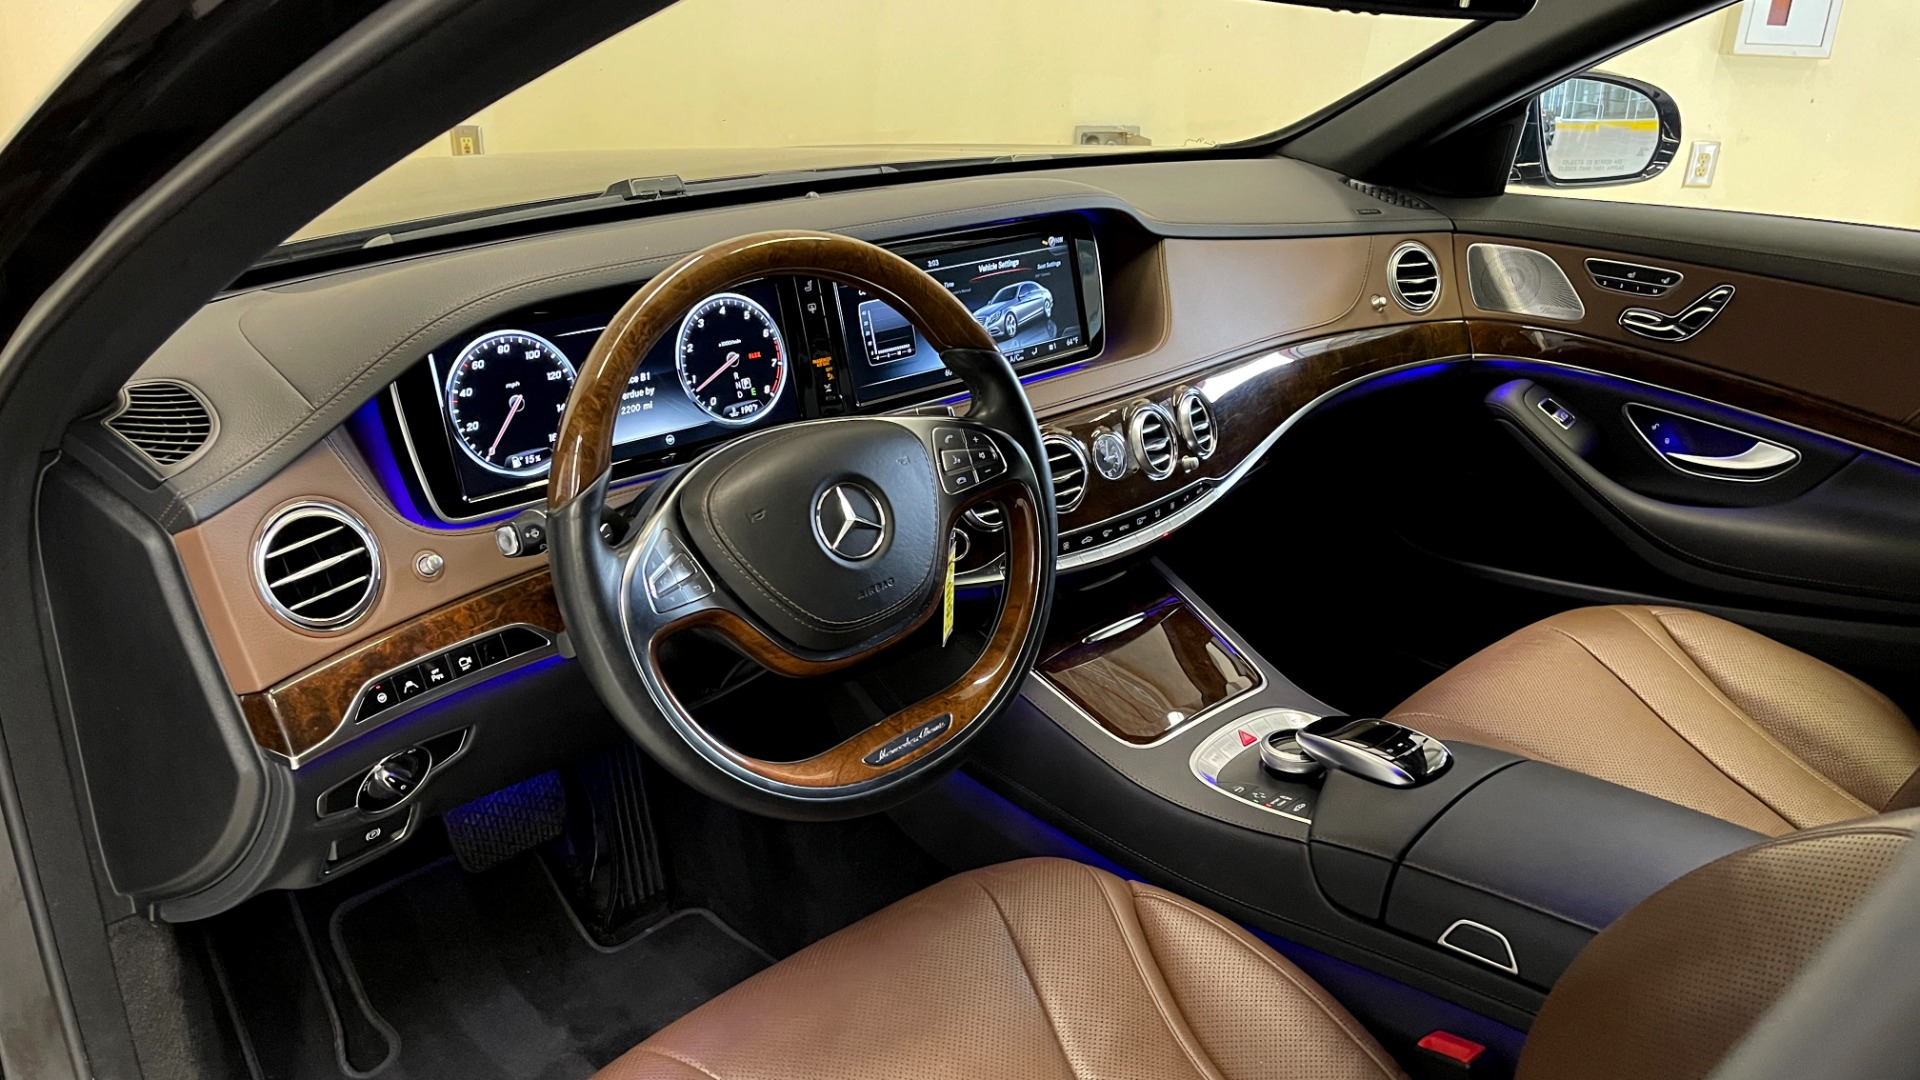 Used 2017 Mercedes-Benz S-CLASS S 550 4MATIC PREMIUM / NAV / BURMESTER / SUNROOF / REARVIEW for sale $58,995 at Formula Imports in Charlotte NC 28227 30